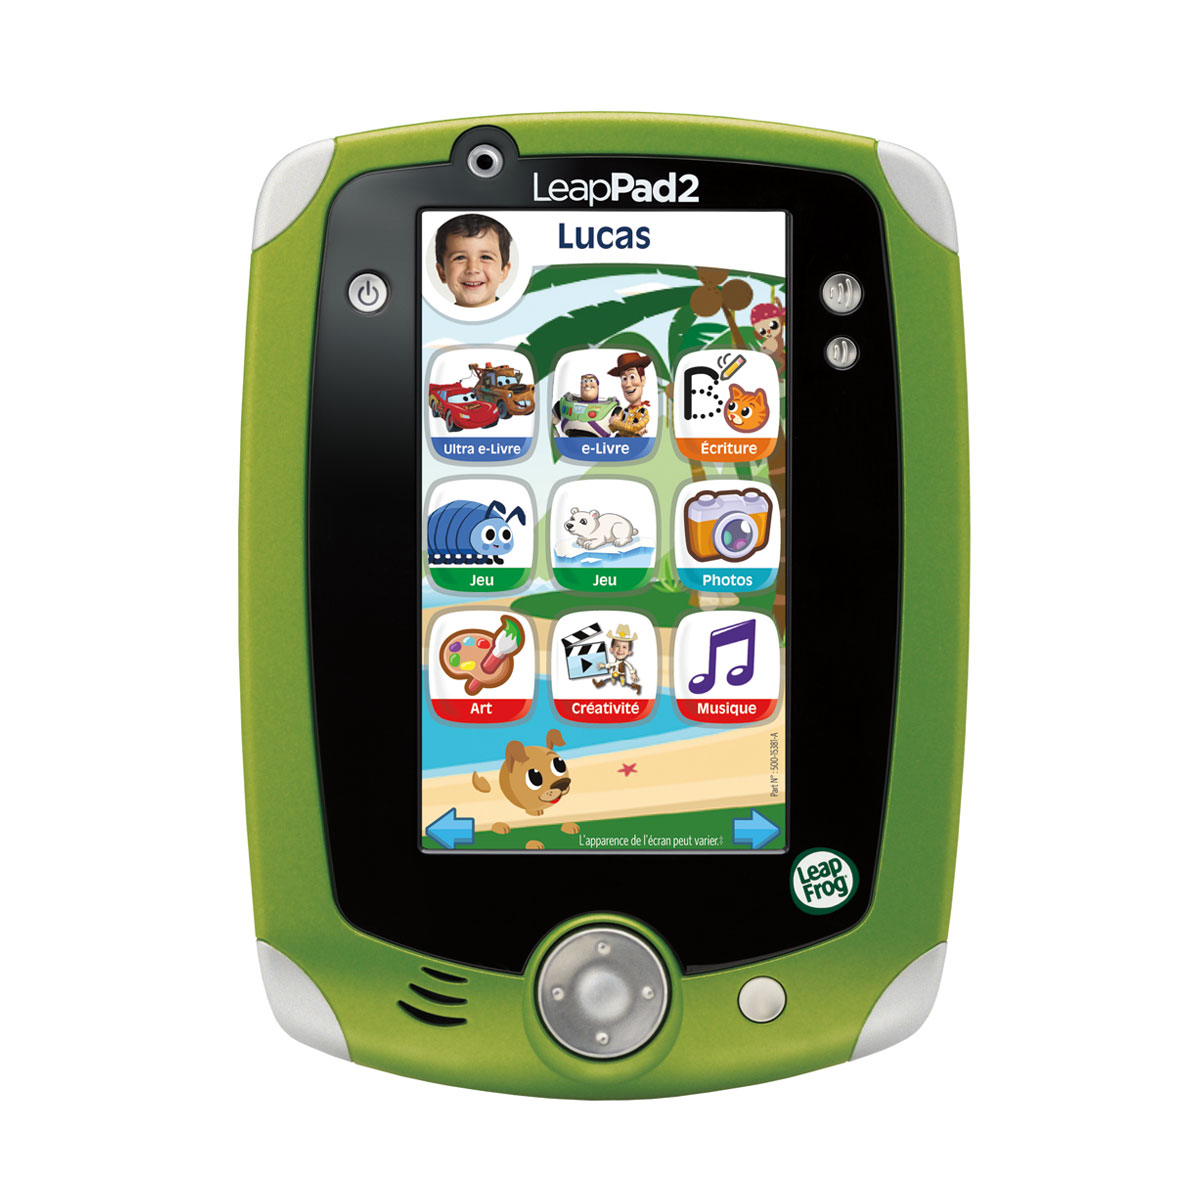 Magasin Console Occasion Leapfrog Leap Pad 2 Vert D 39occasion